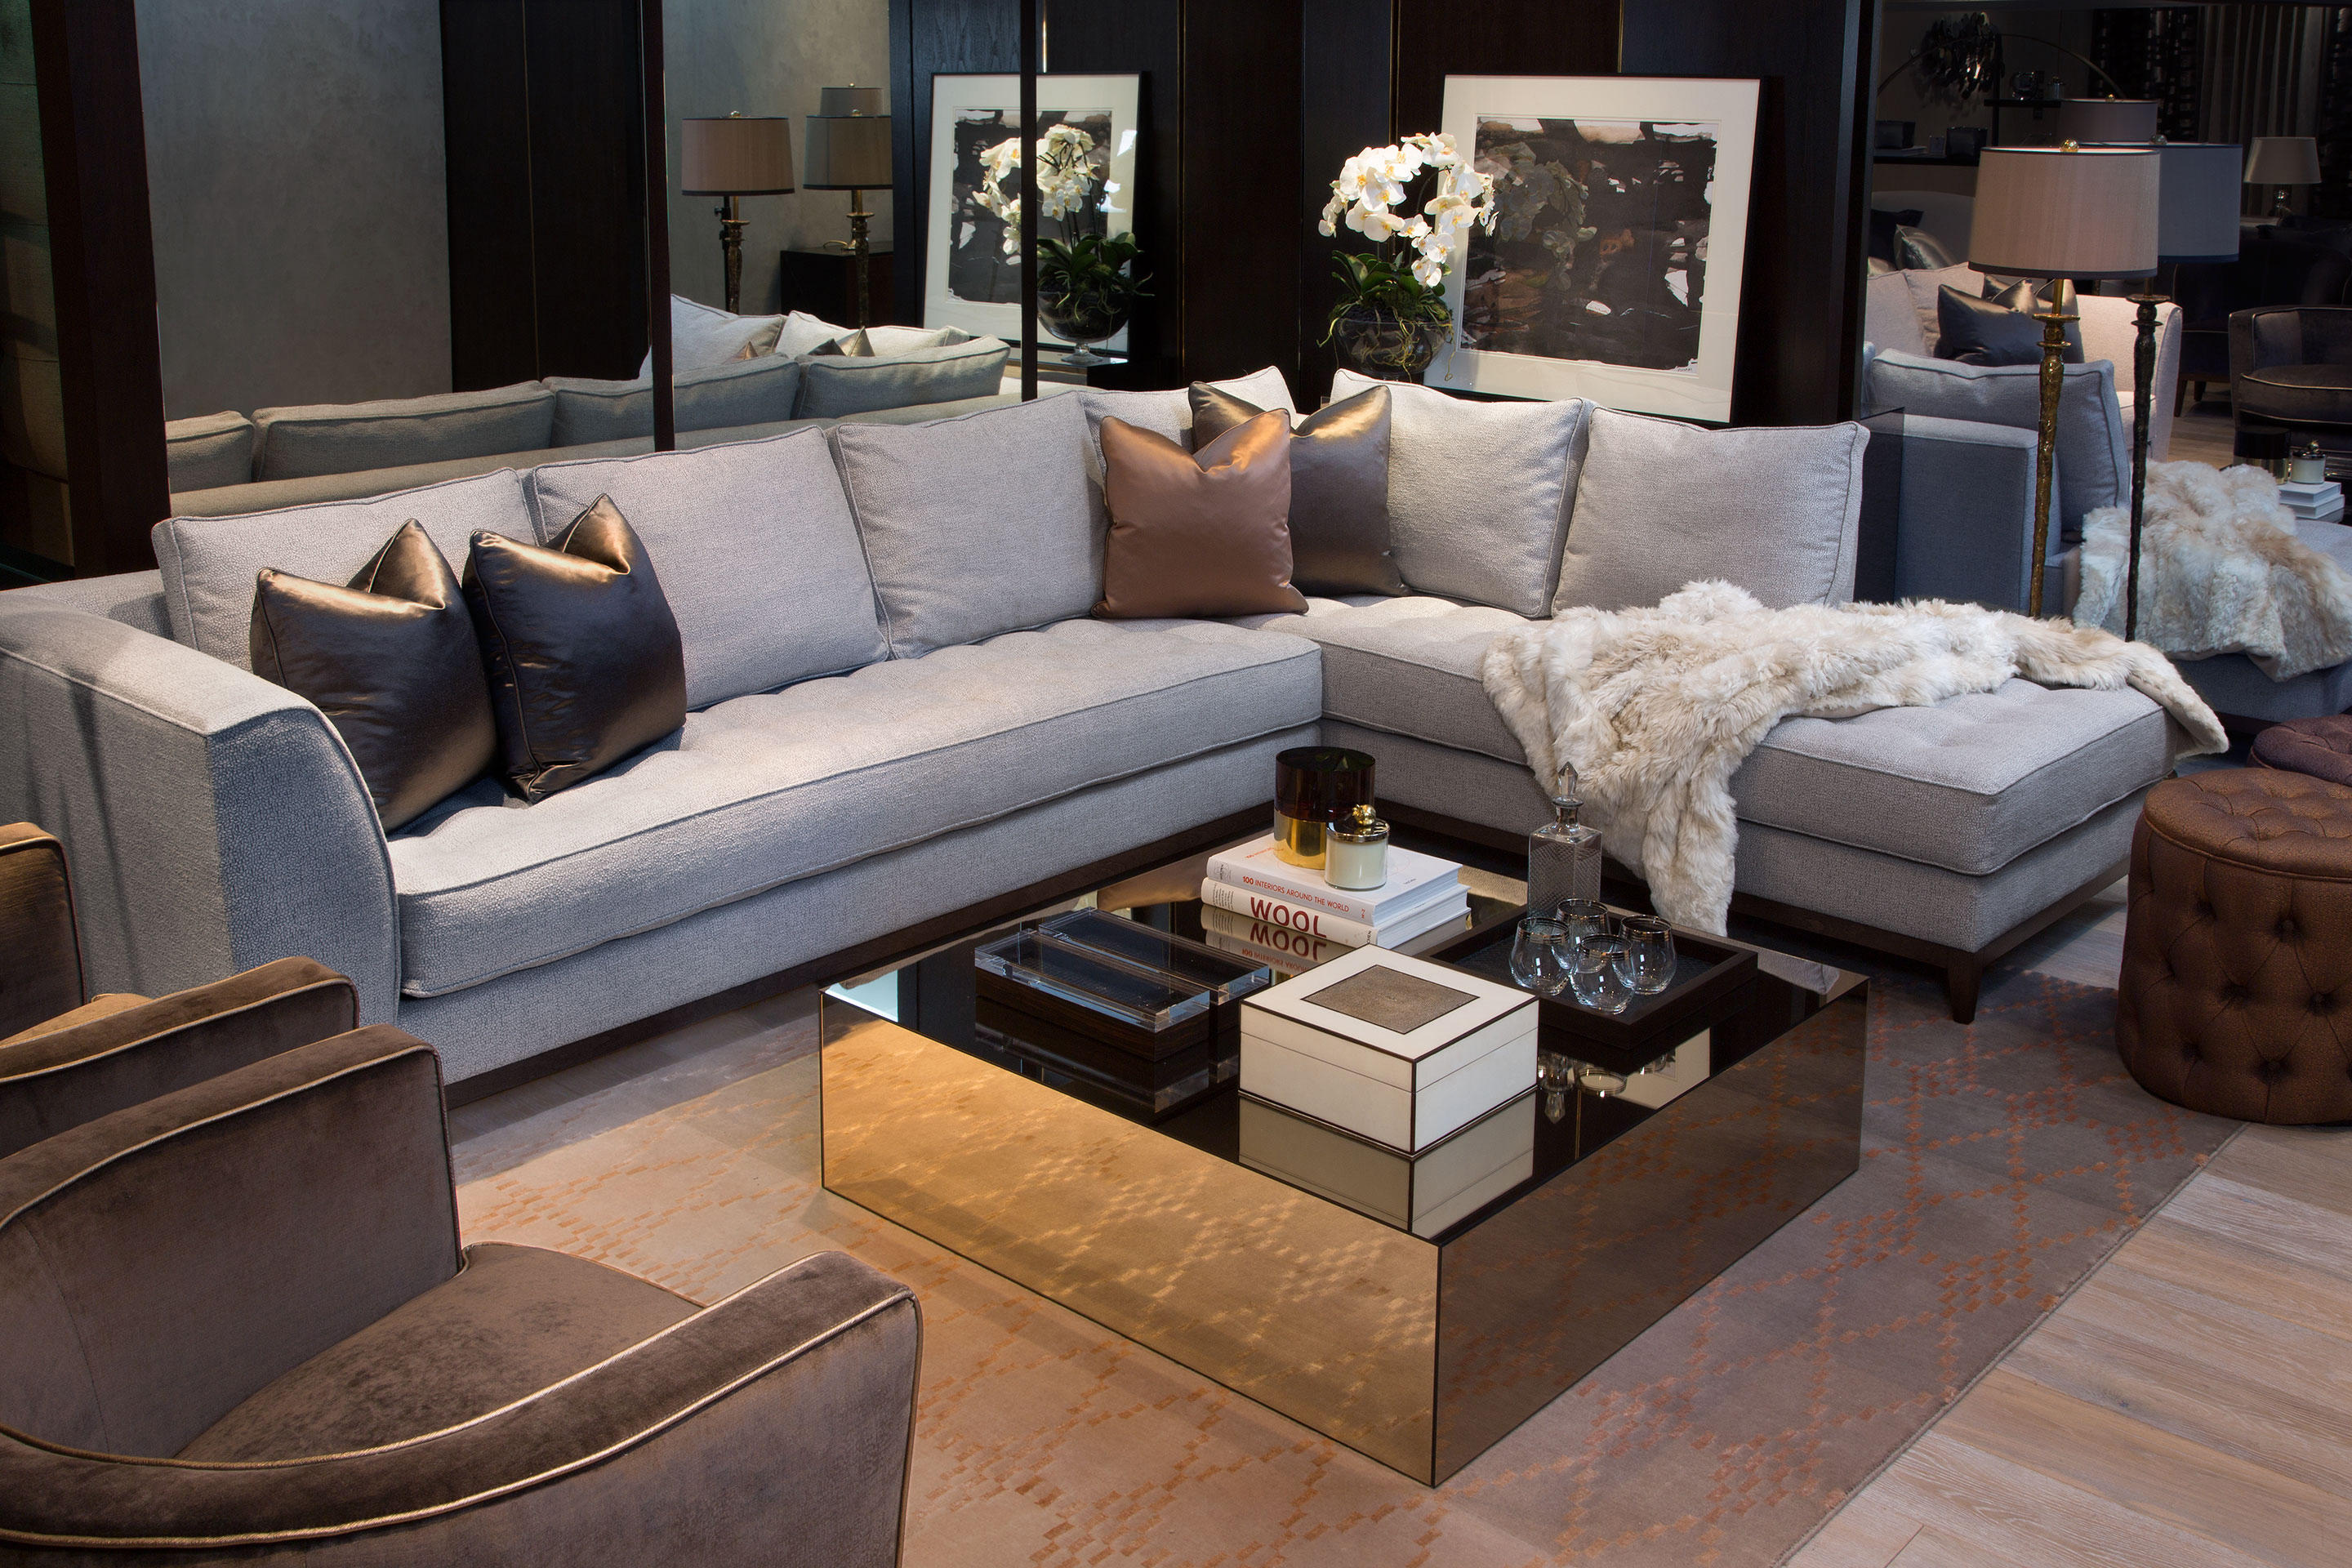 Magnificent Barbican Sofa By Sofa Chair Company Barbican Sofa Sofas From Sofa Chair Company Ltd Sofa Company Warranty Sofa Company Locations houzz-02 The Sofa Company